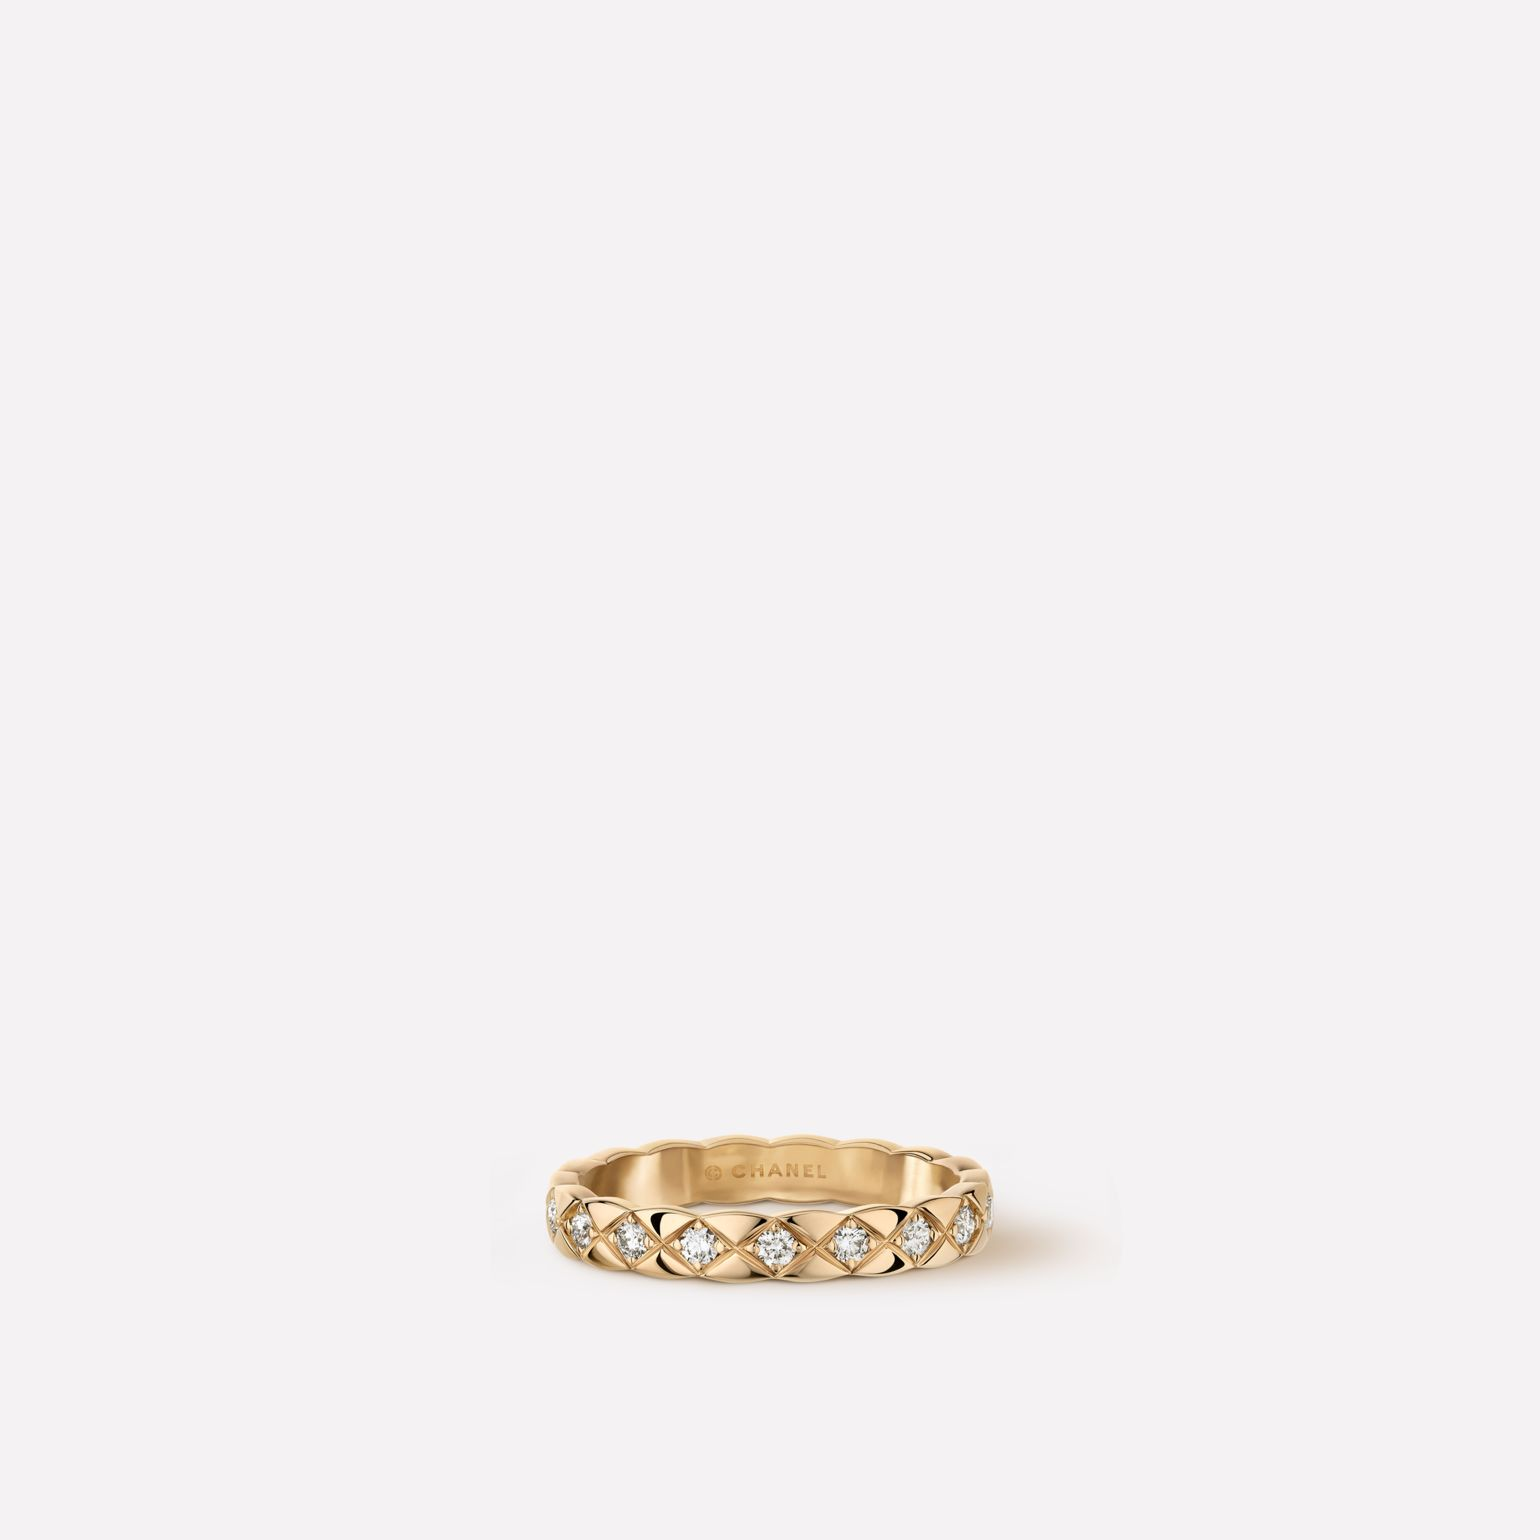 Coco Crush ring Quilted motif, mini version, 18K BEIGE GOLD, diamonds